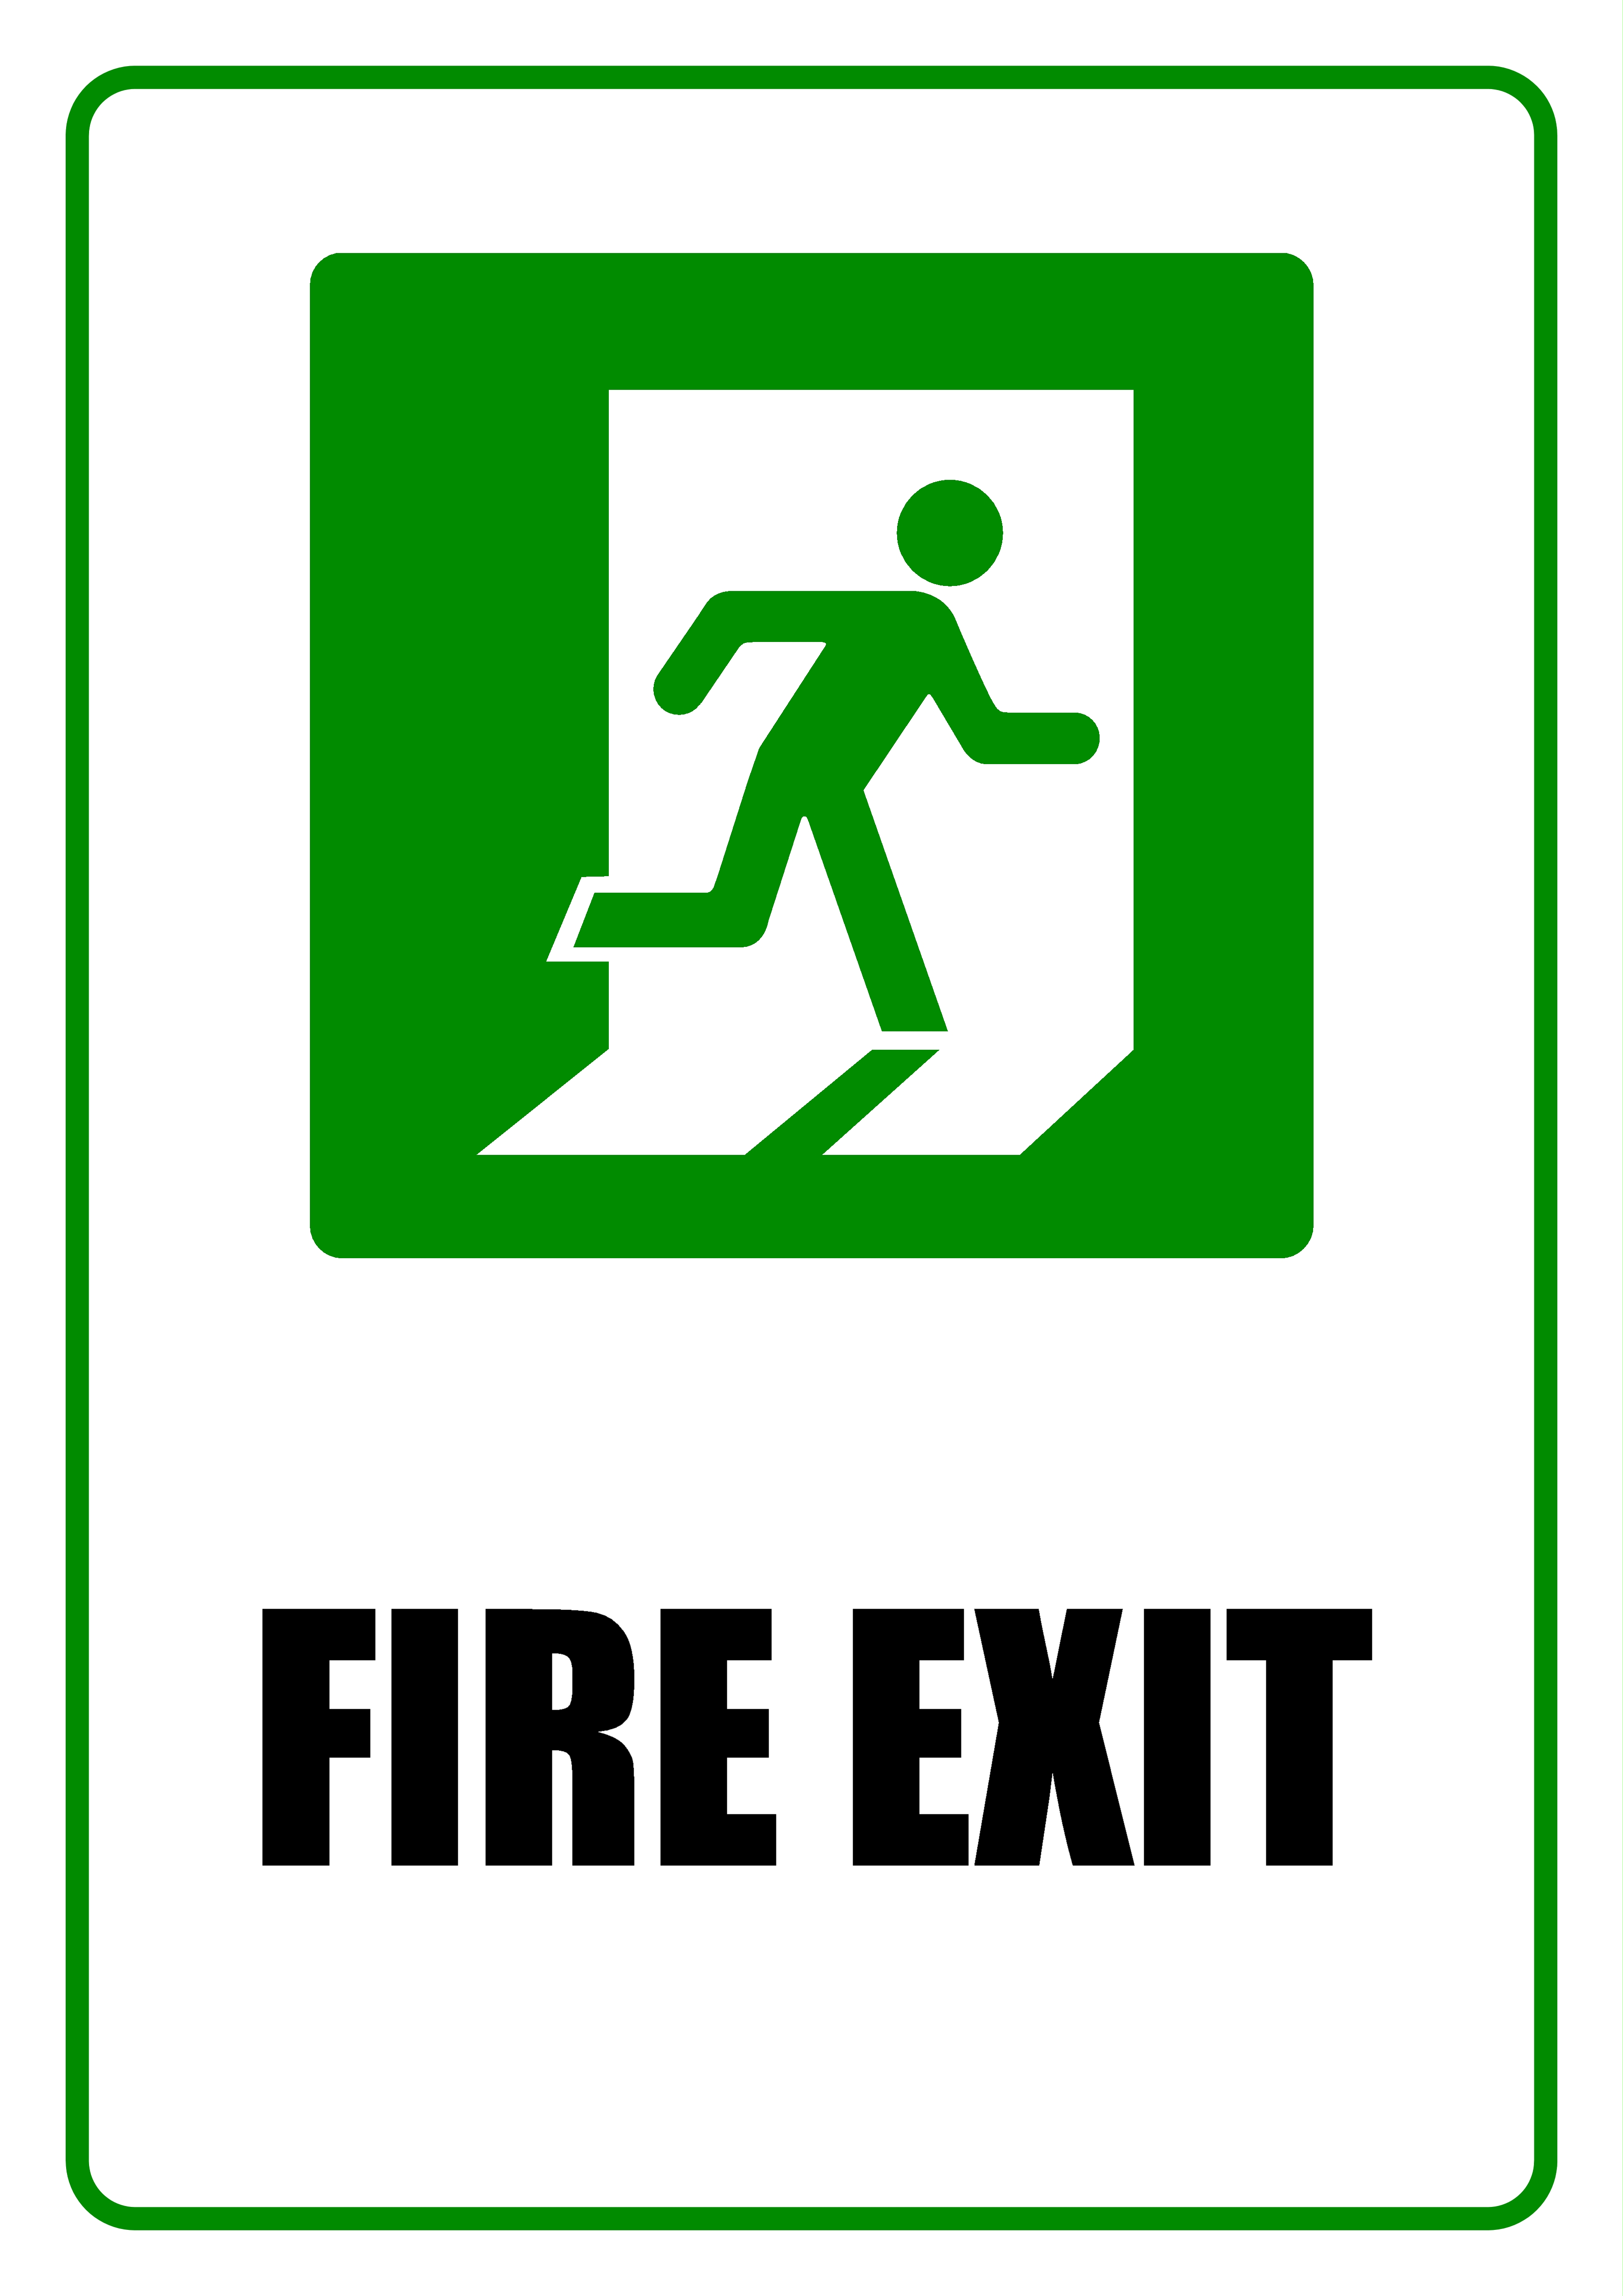 Fire Exit - Sign, White, Sign, Green, Exit, HQ Photo